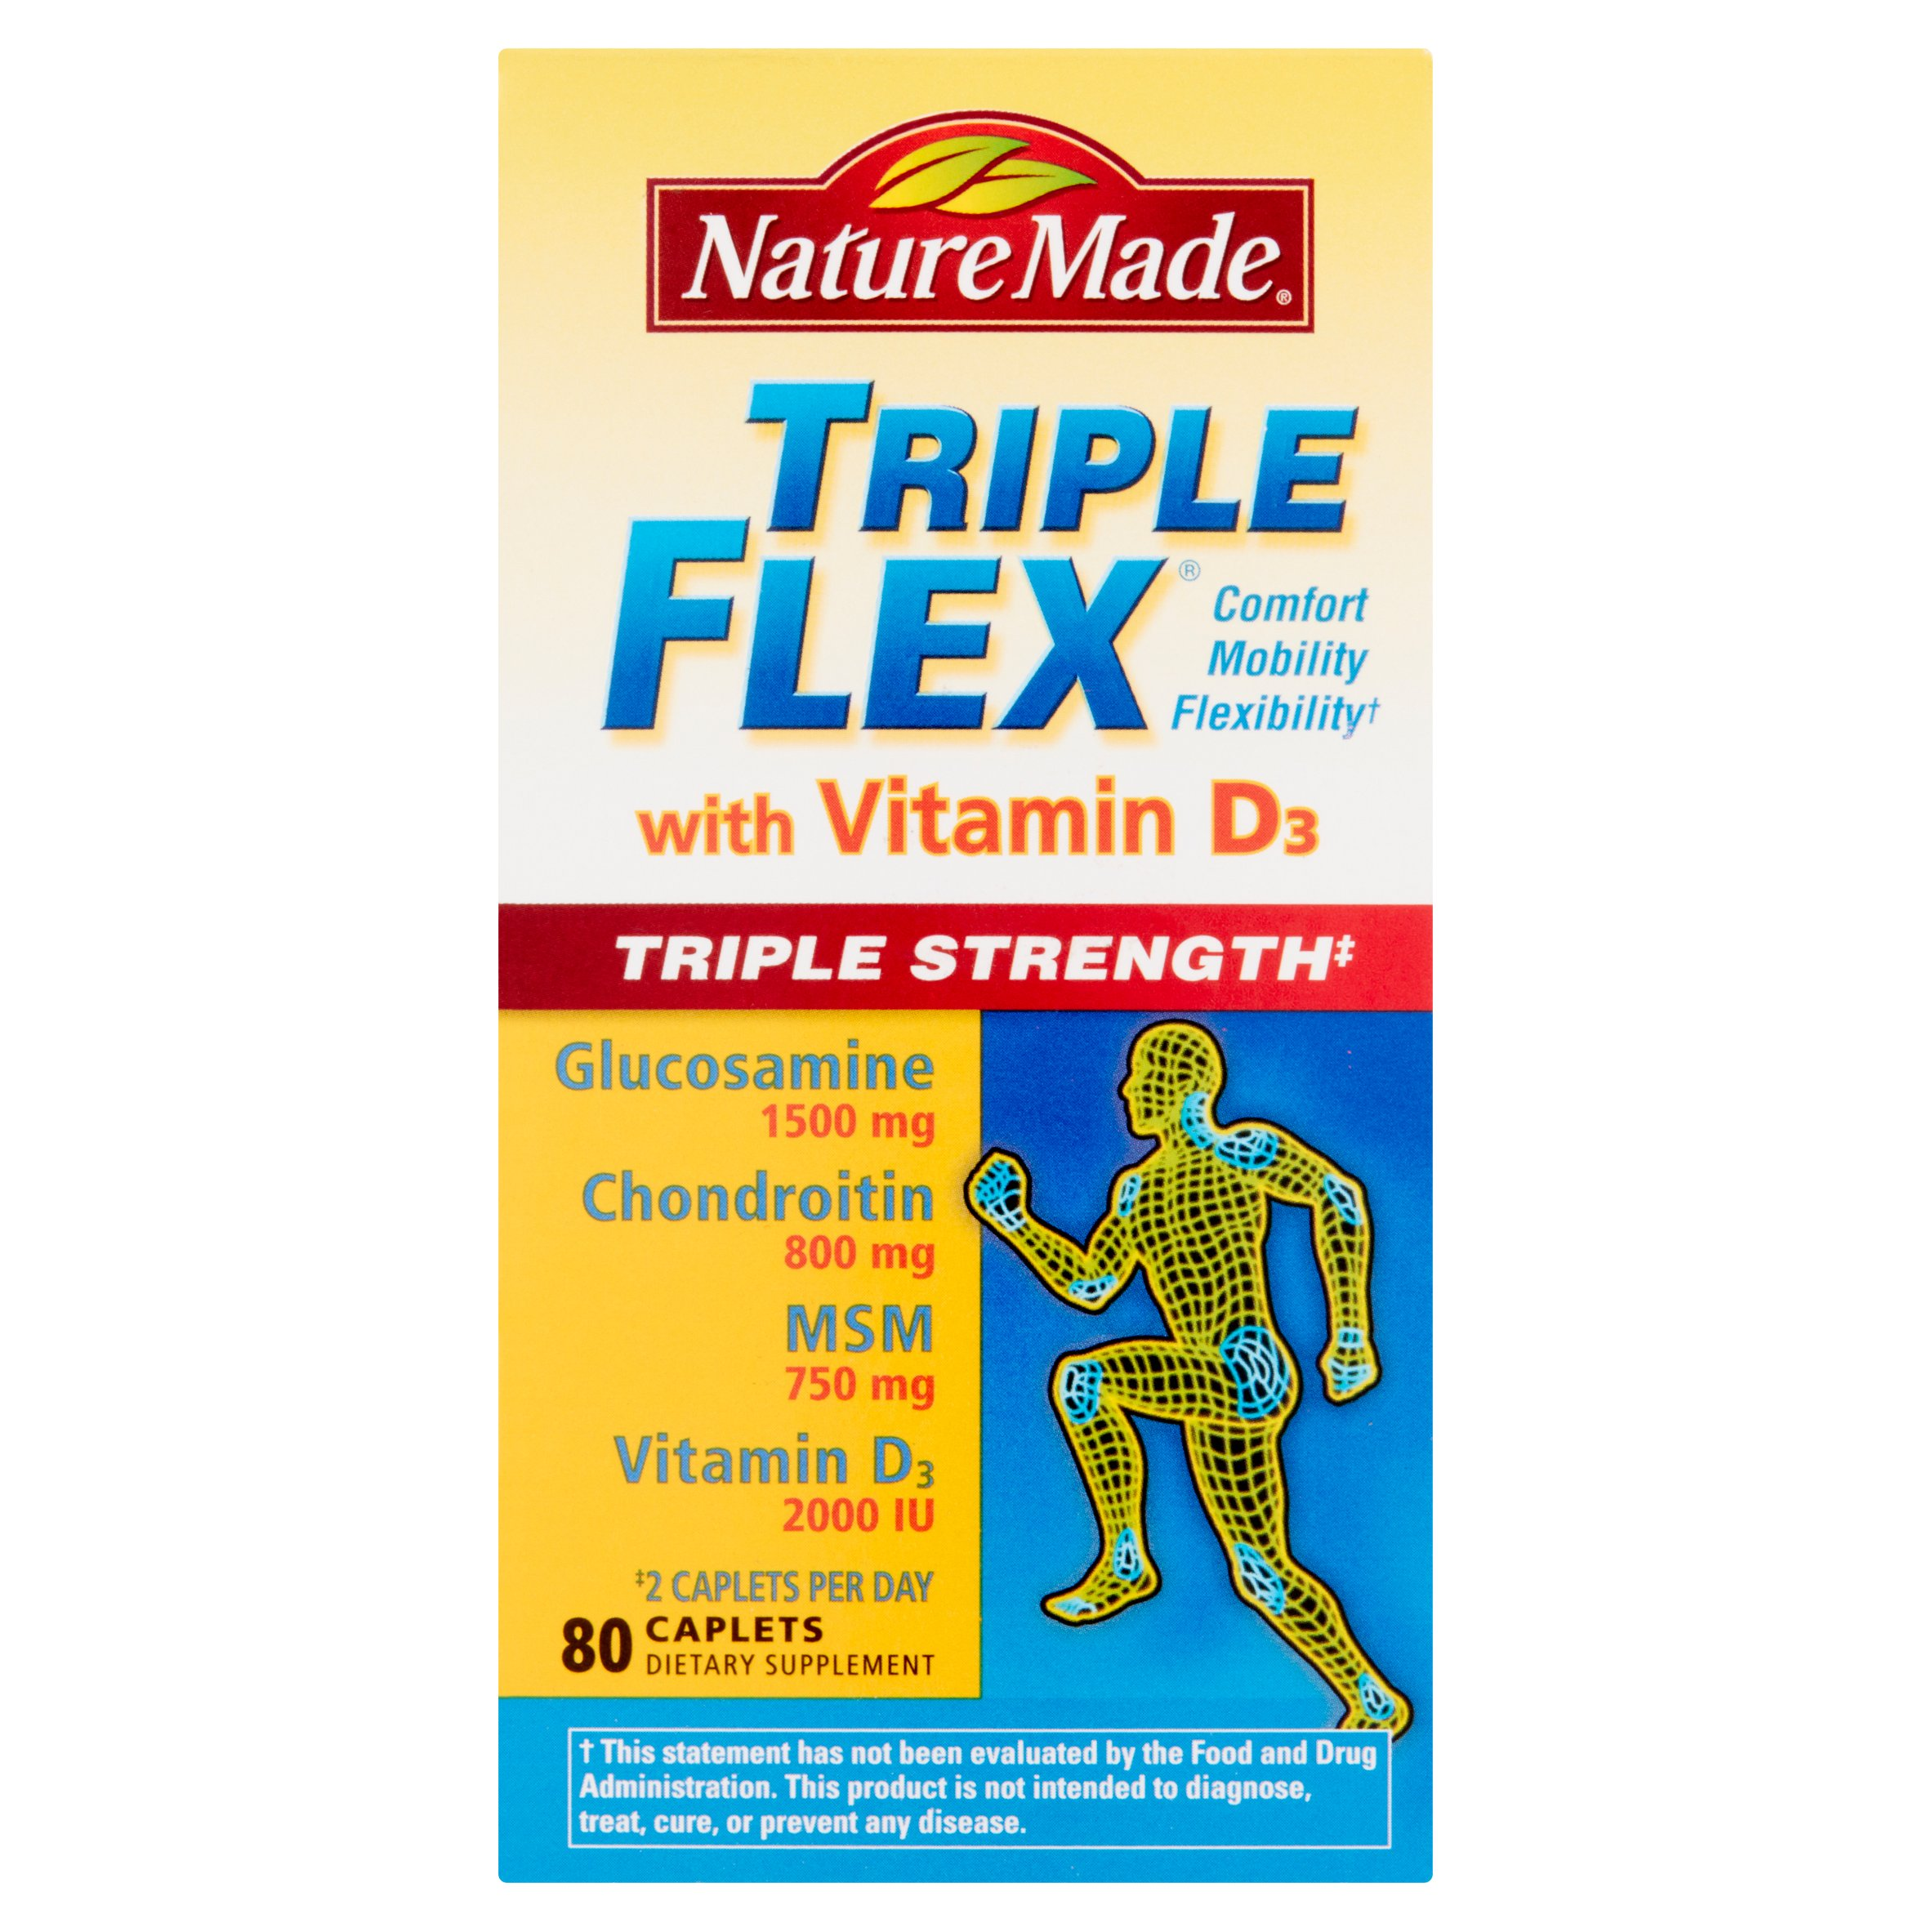 Nature Made Triple Flex with Vitamin D3 Caplets, 80 count